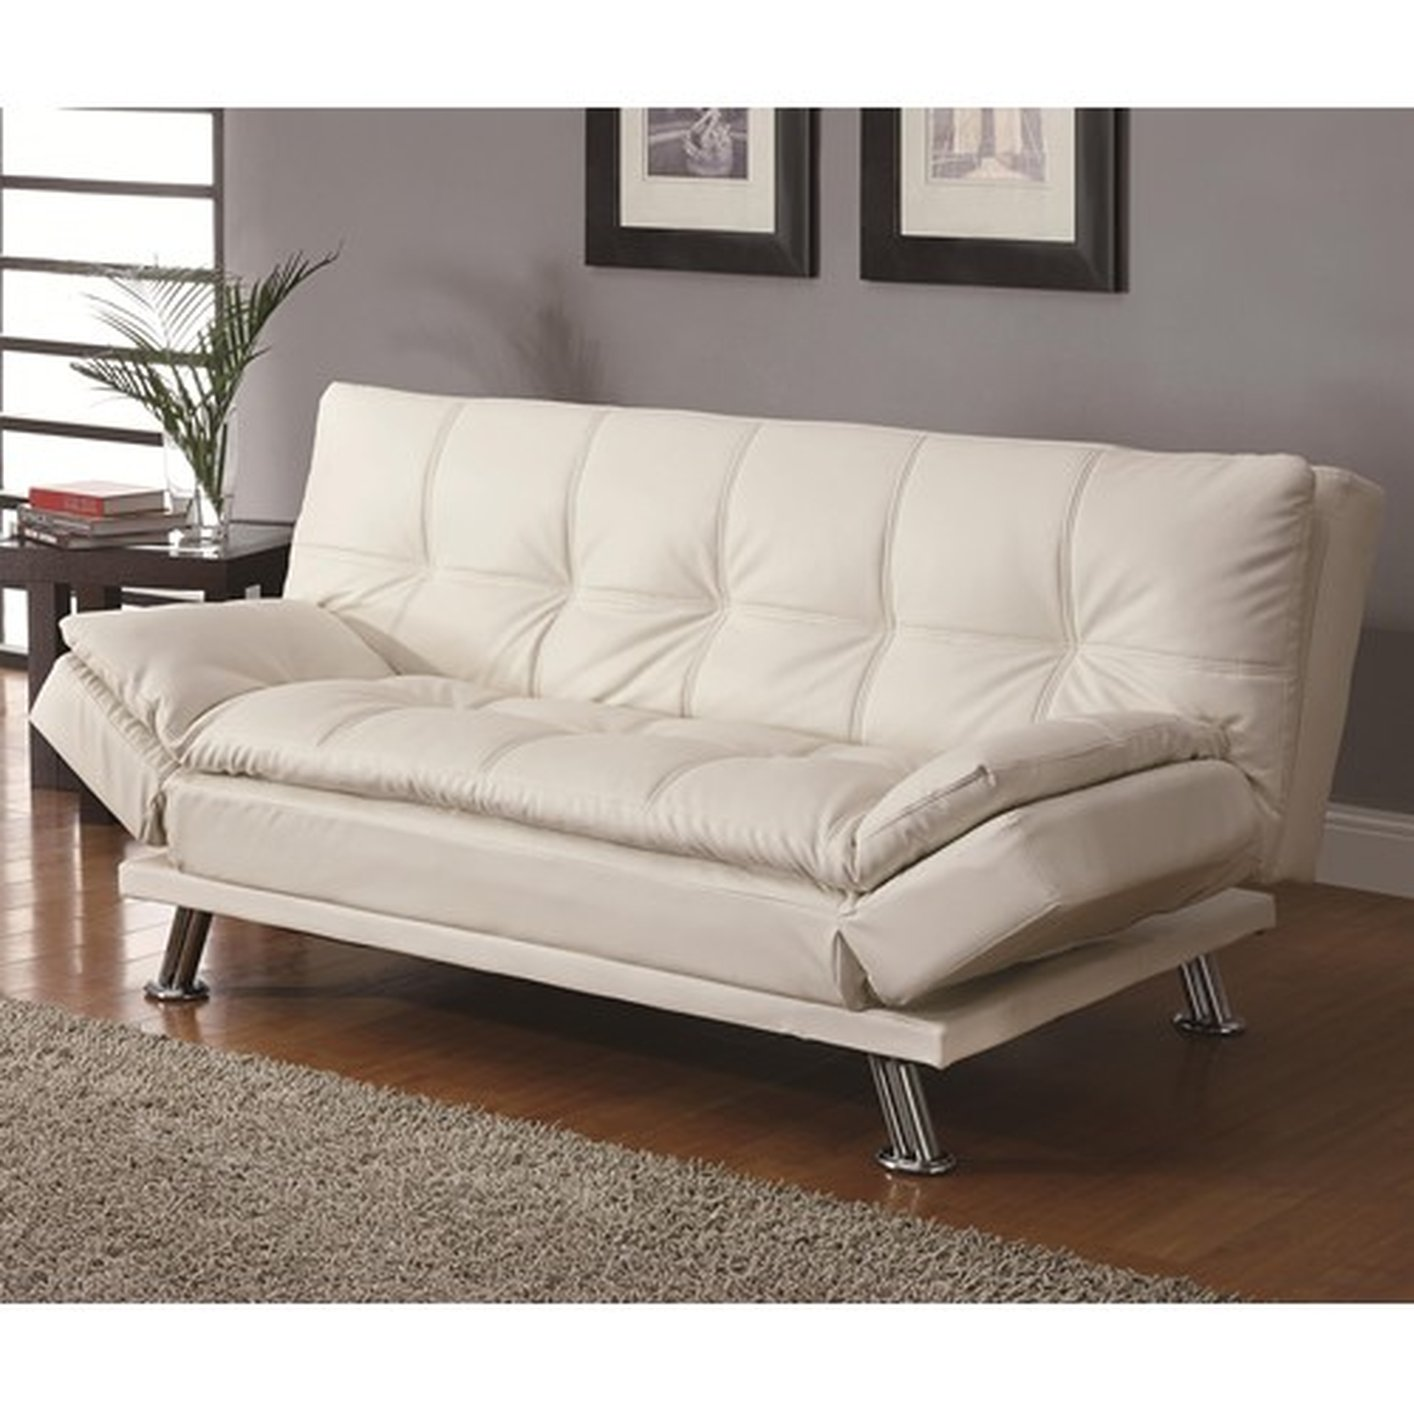 coaster dilleston 300291 white leather sofa bed steal a sofa furniture outlet los angeles ca. Black Bedroom Furniture Sets. Home Design Ideas